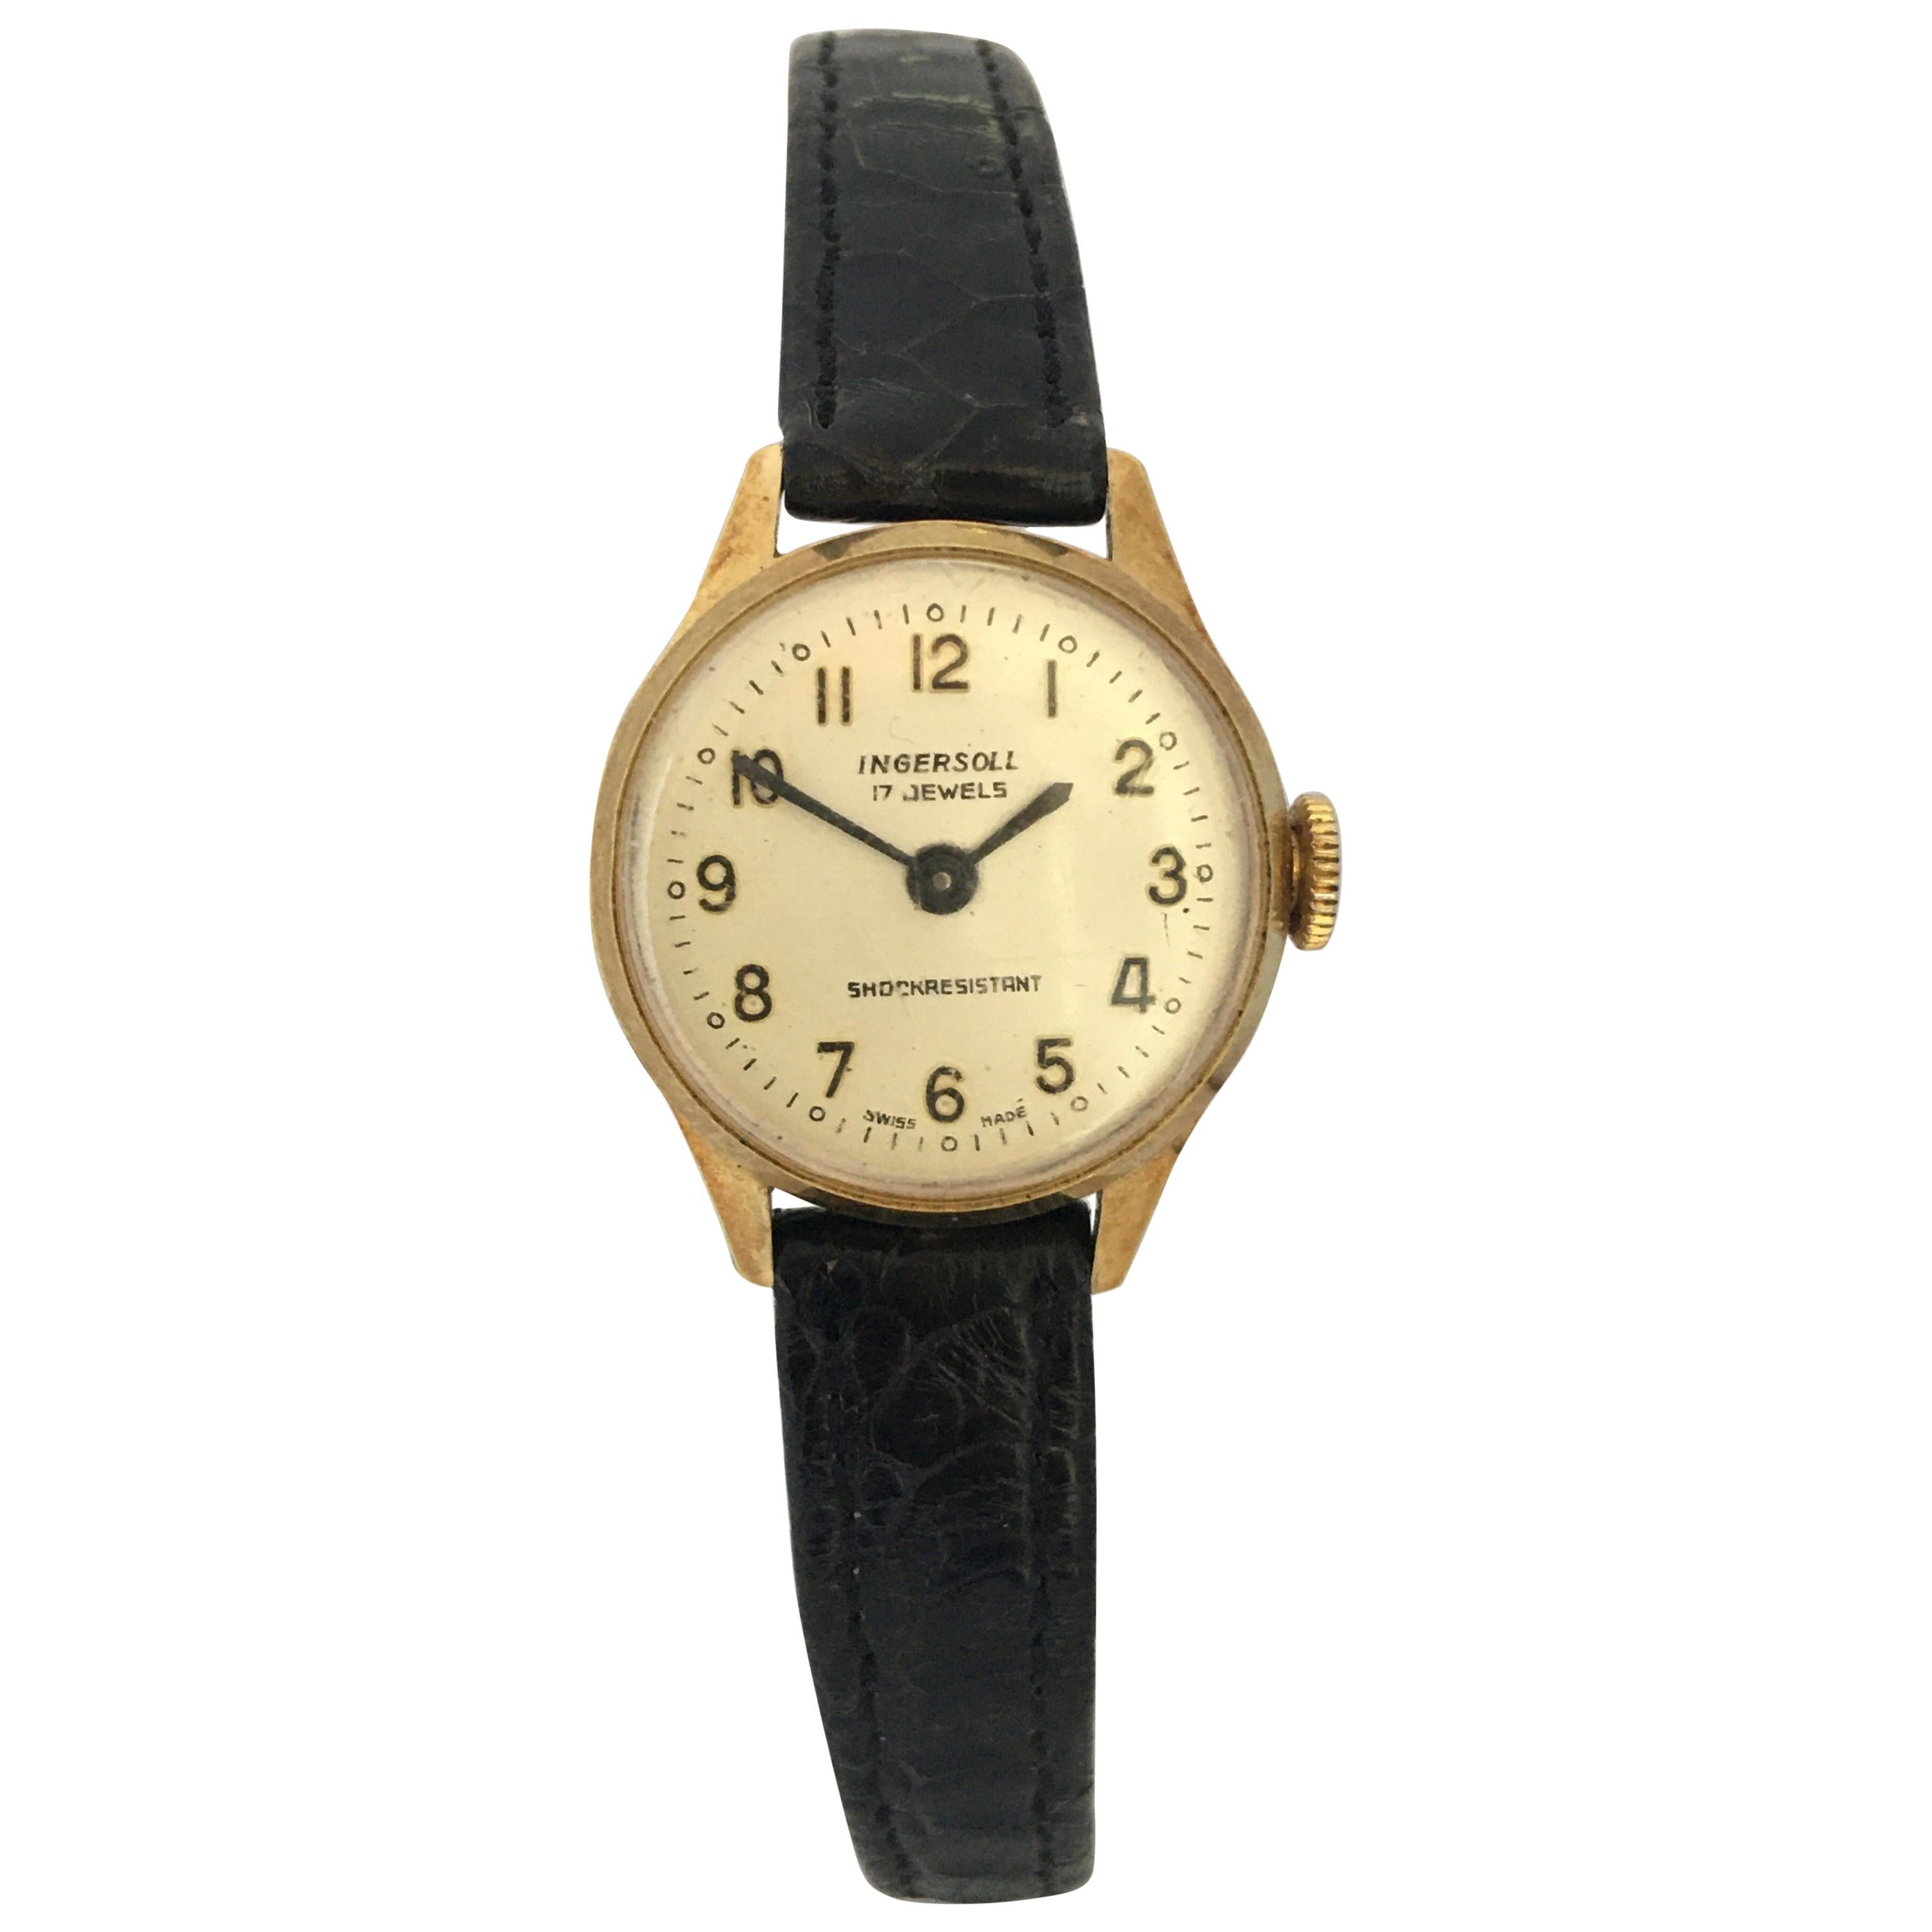 Ladies Vintage Gold-Plated Ingersoll Mechanical Watch